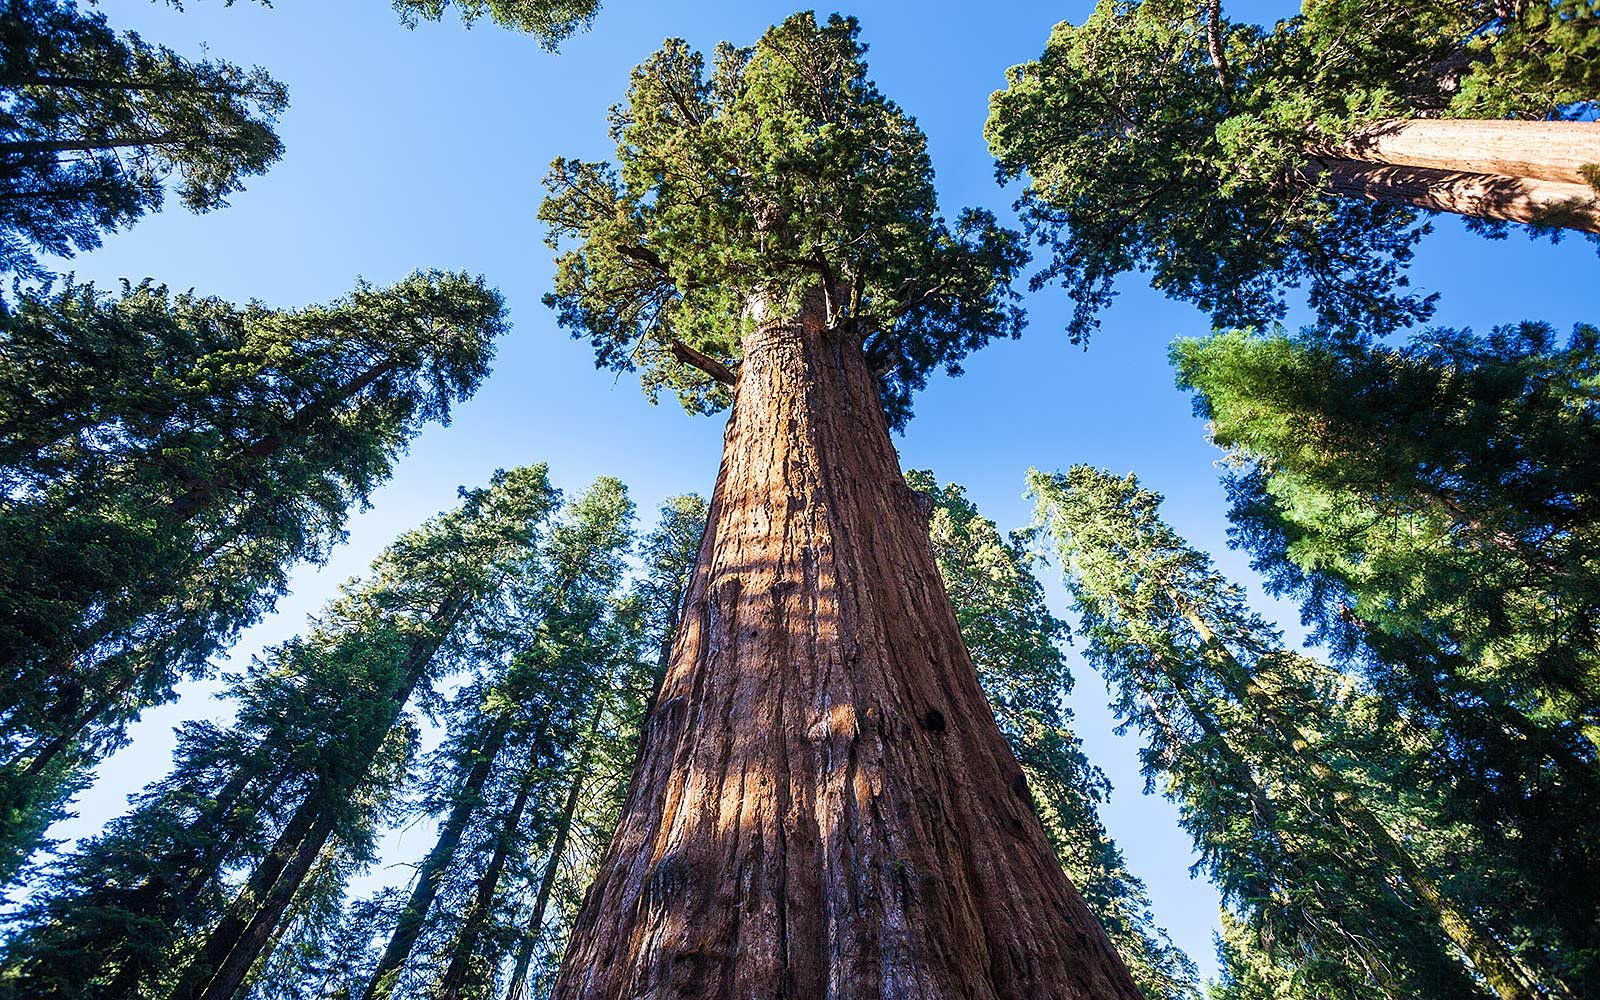 10 Incredible Trees You Can Still Visit, Now That Pioneer Cabin Is No More